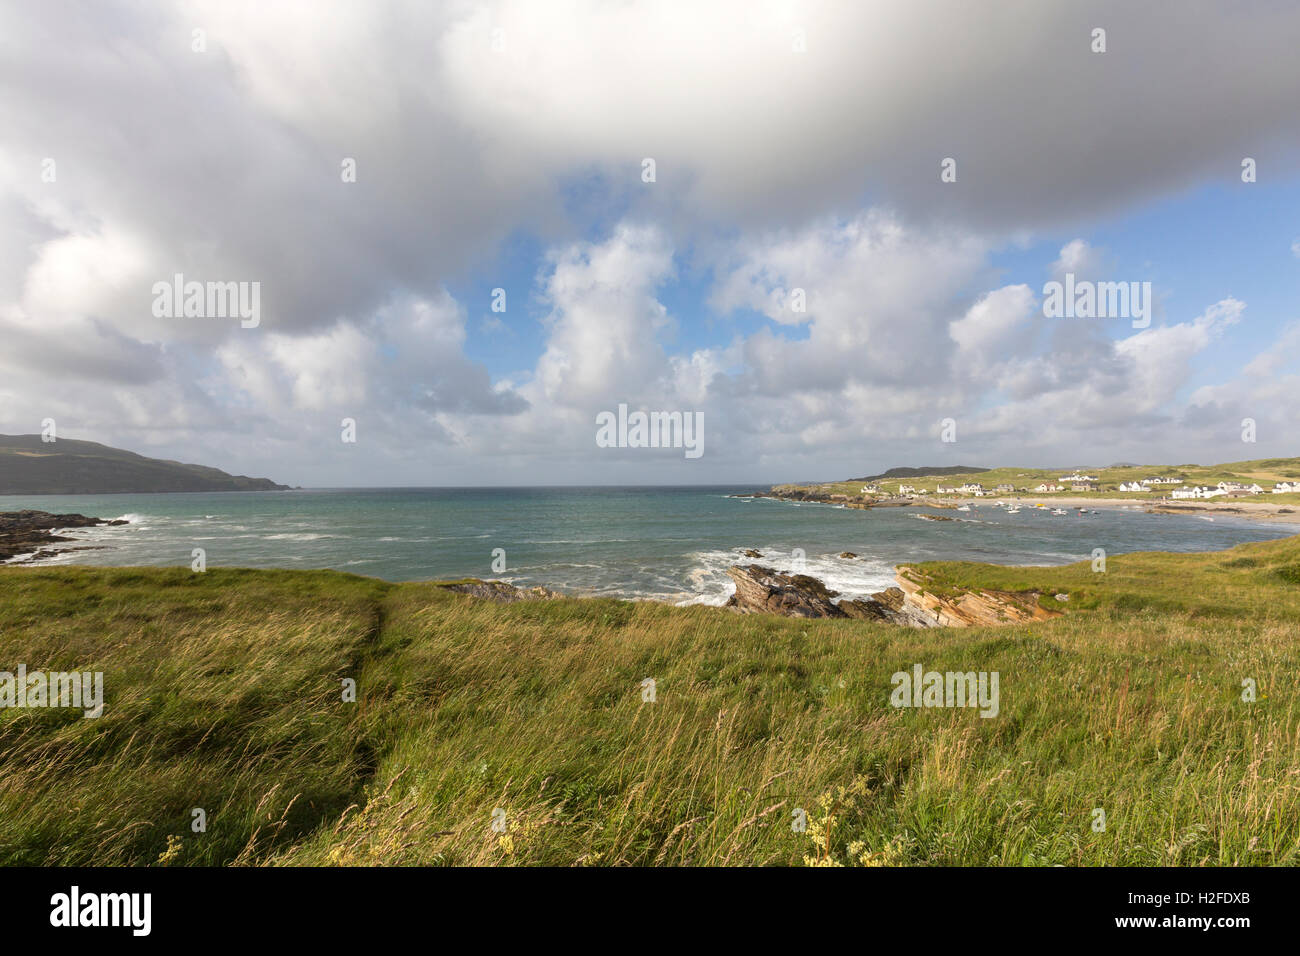 Portnablagh near Dunfanaghy, County Donegal, Ireland - Stock Image